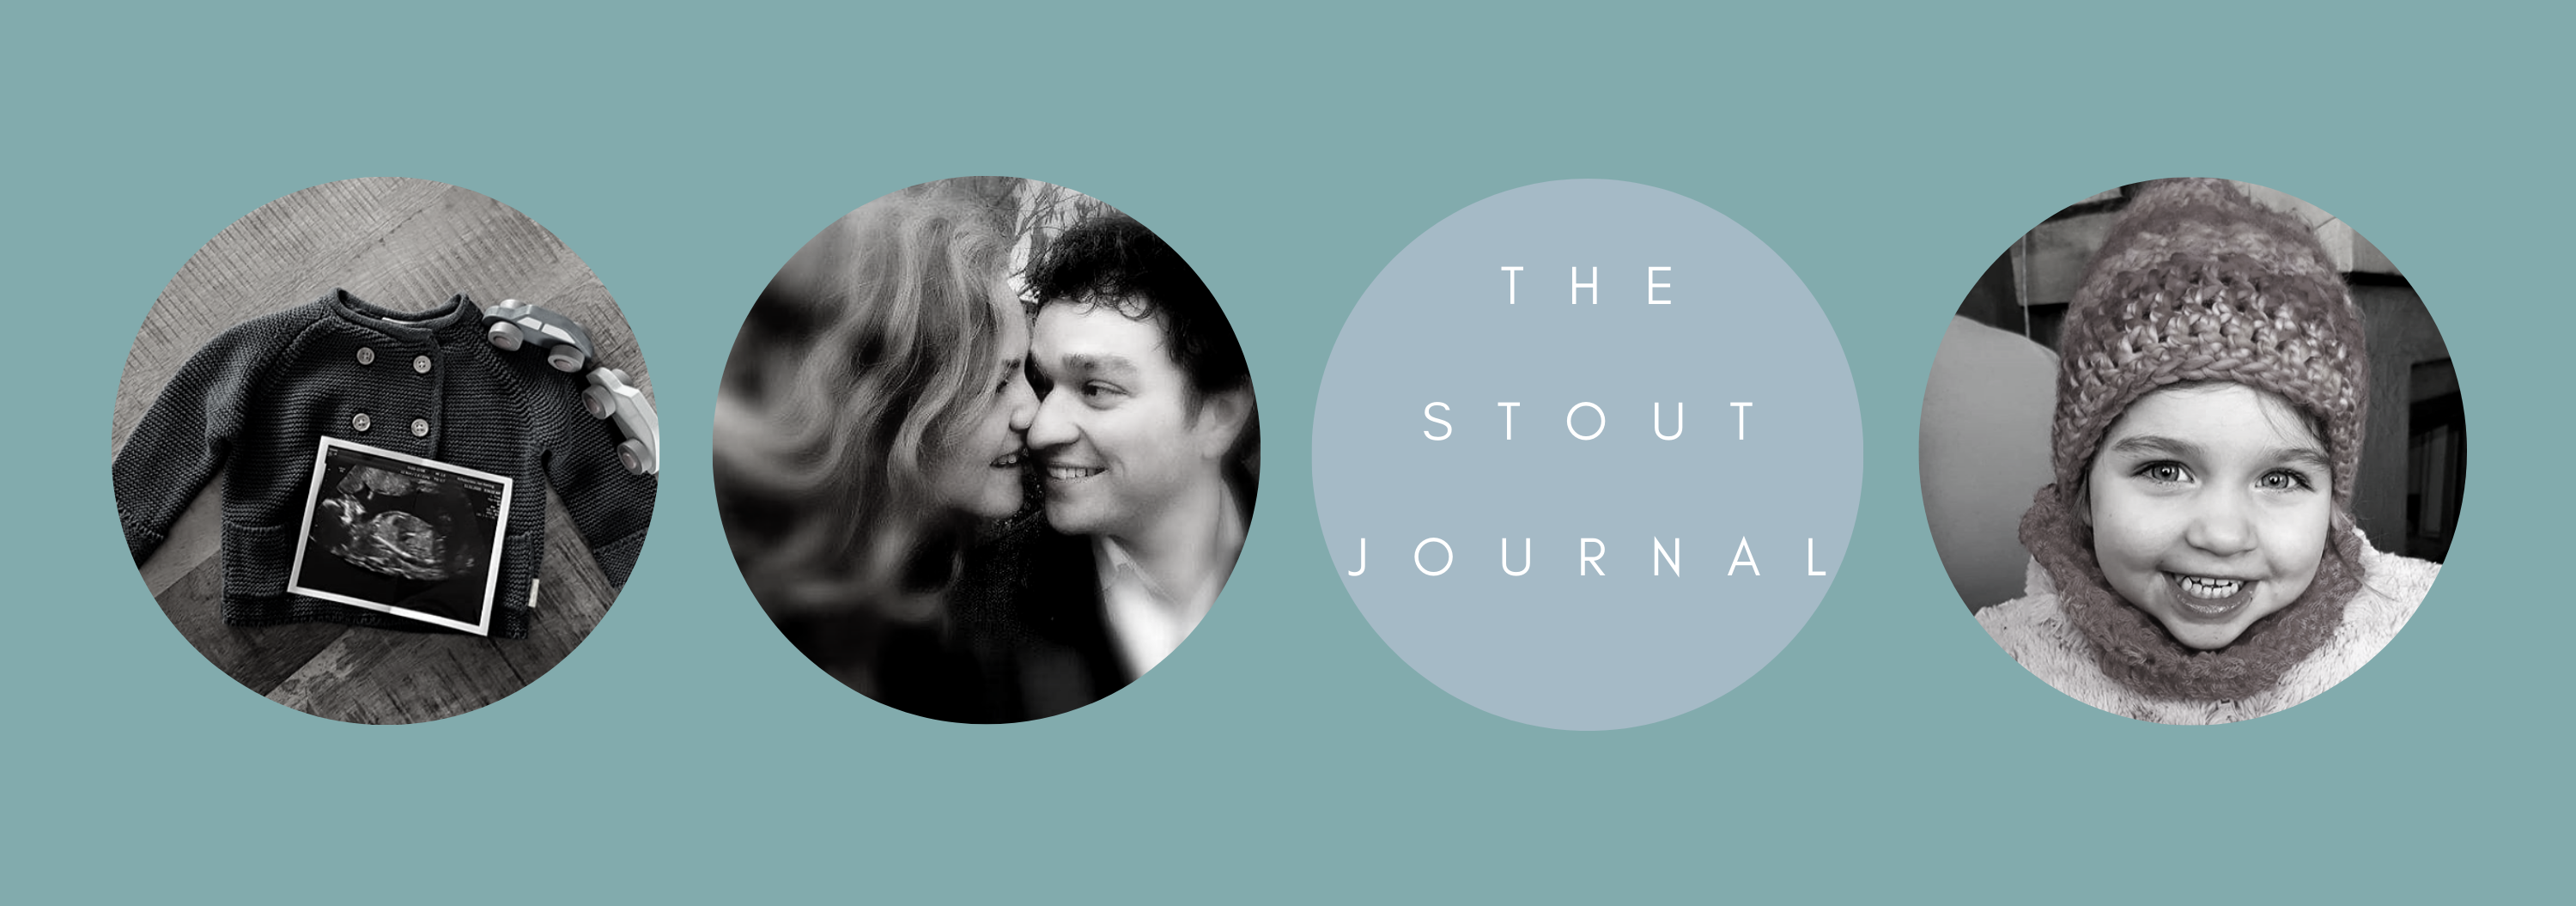 The Stout Journal